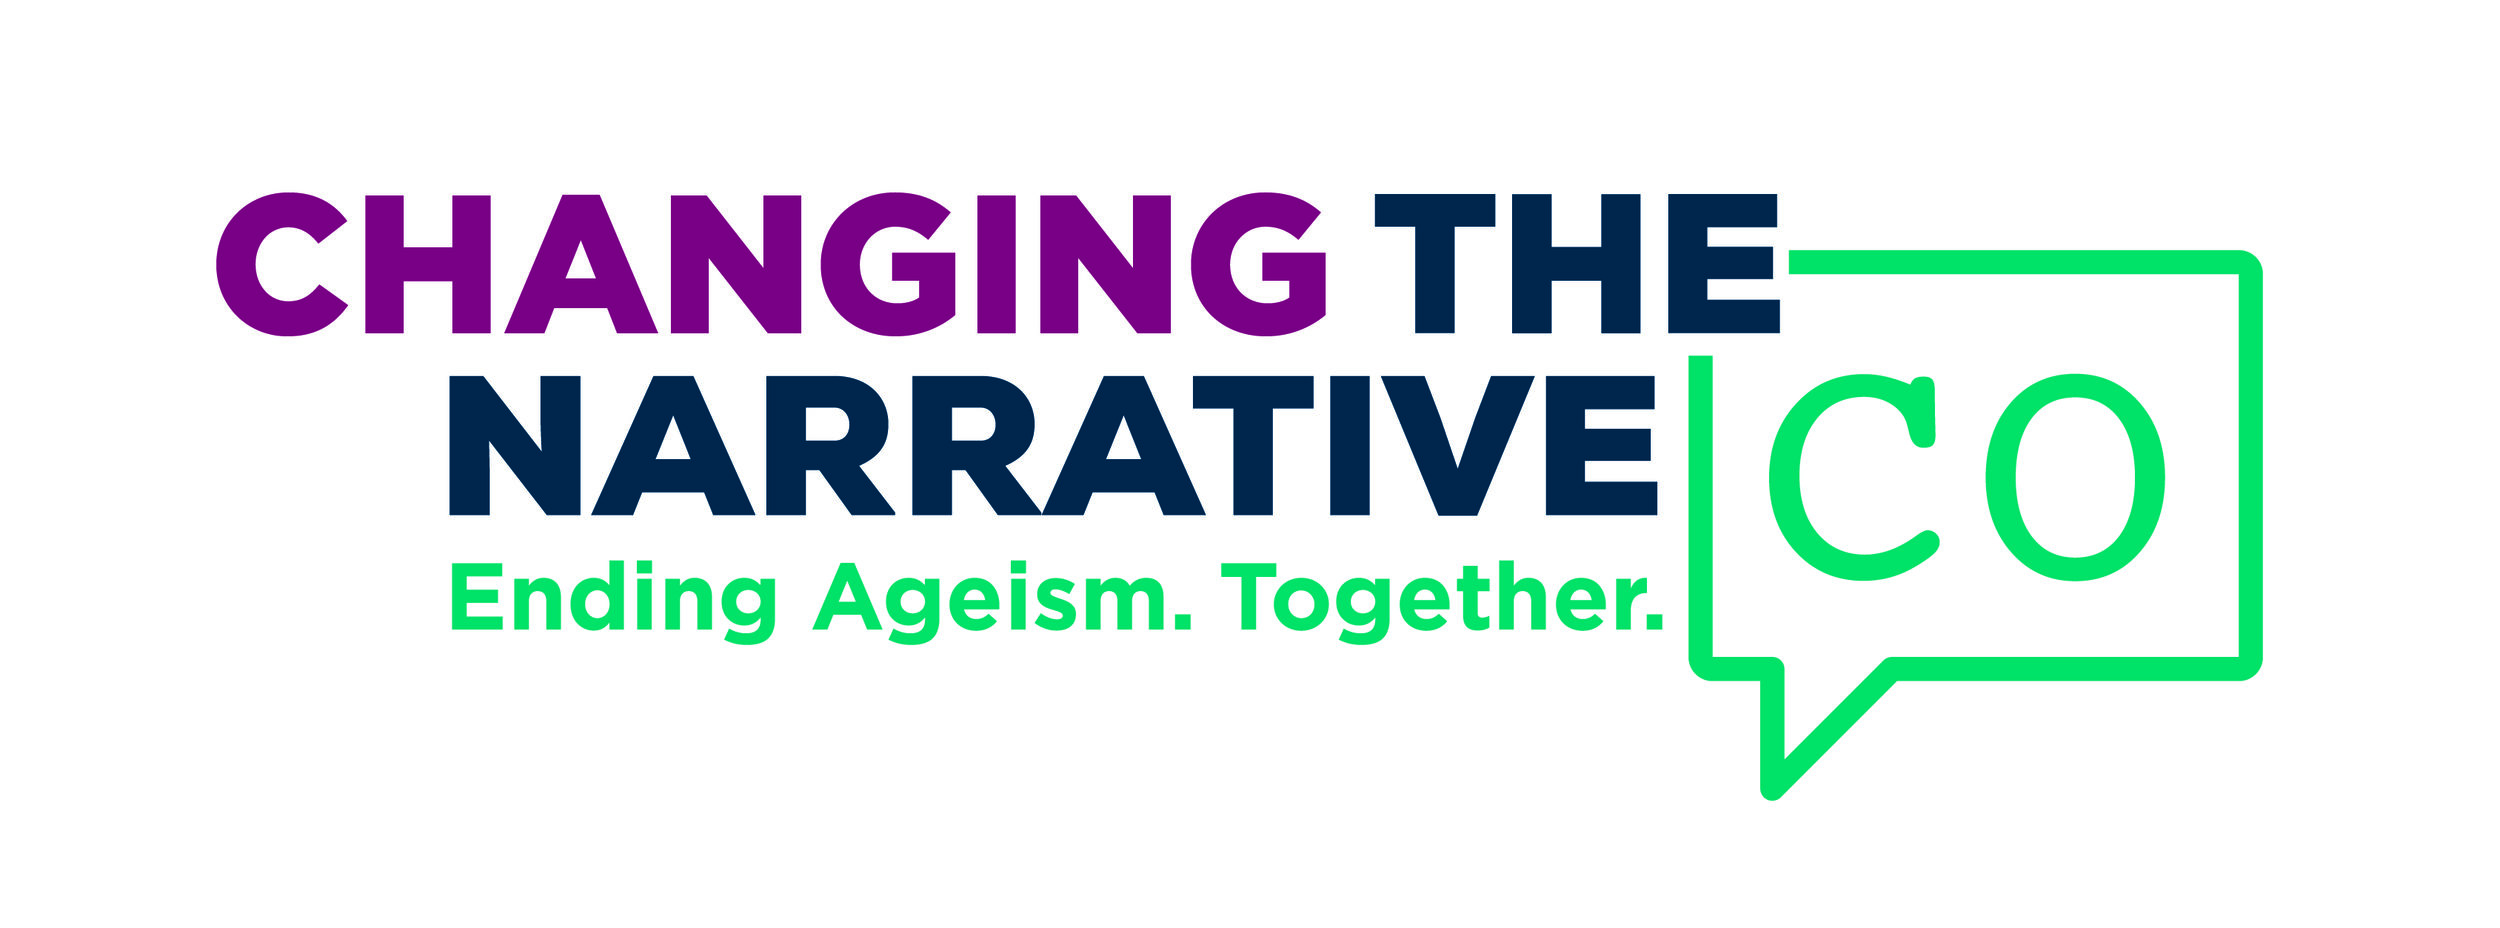 Final_RCF_ChangingTheNarrative_Logo_Primary_Full-Color-1.jpg